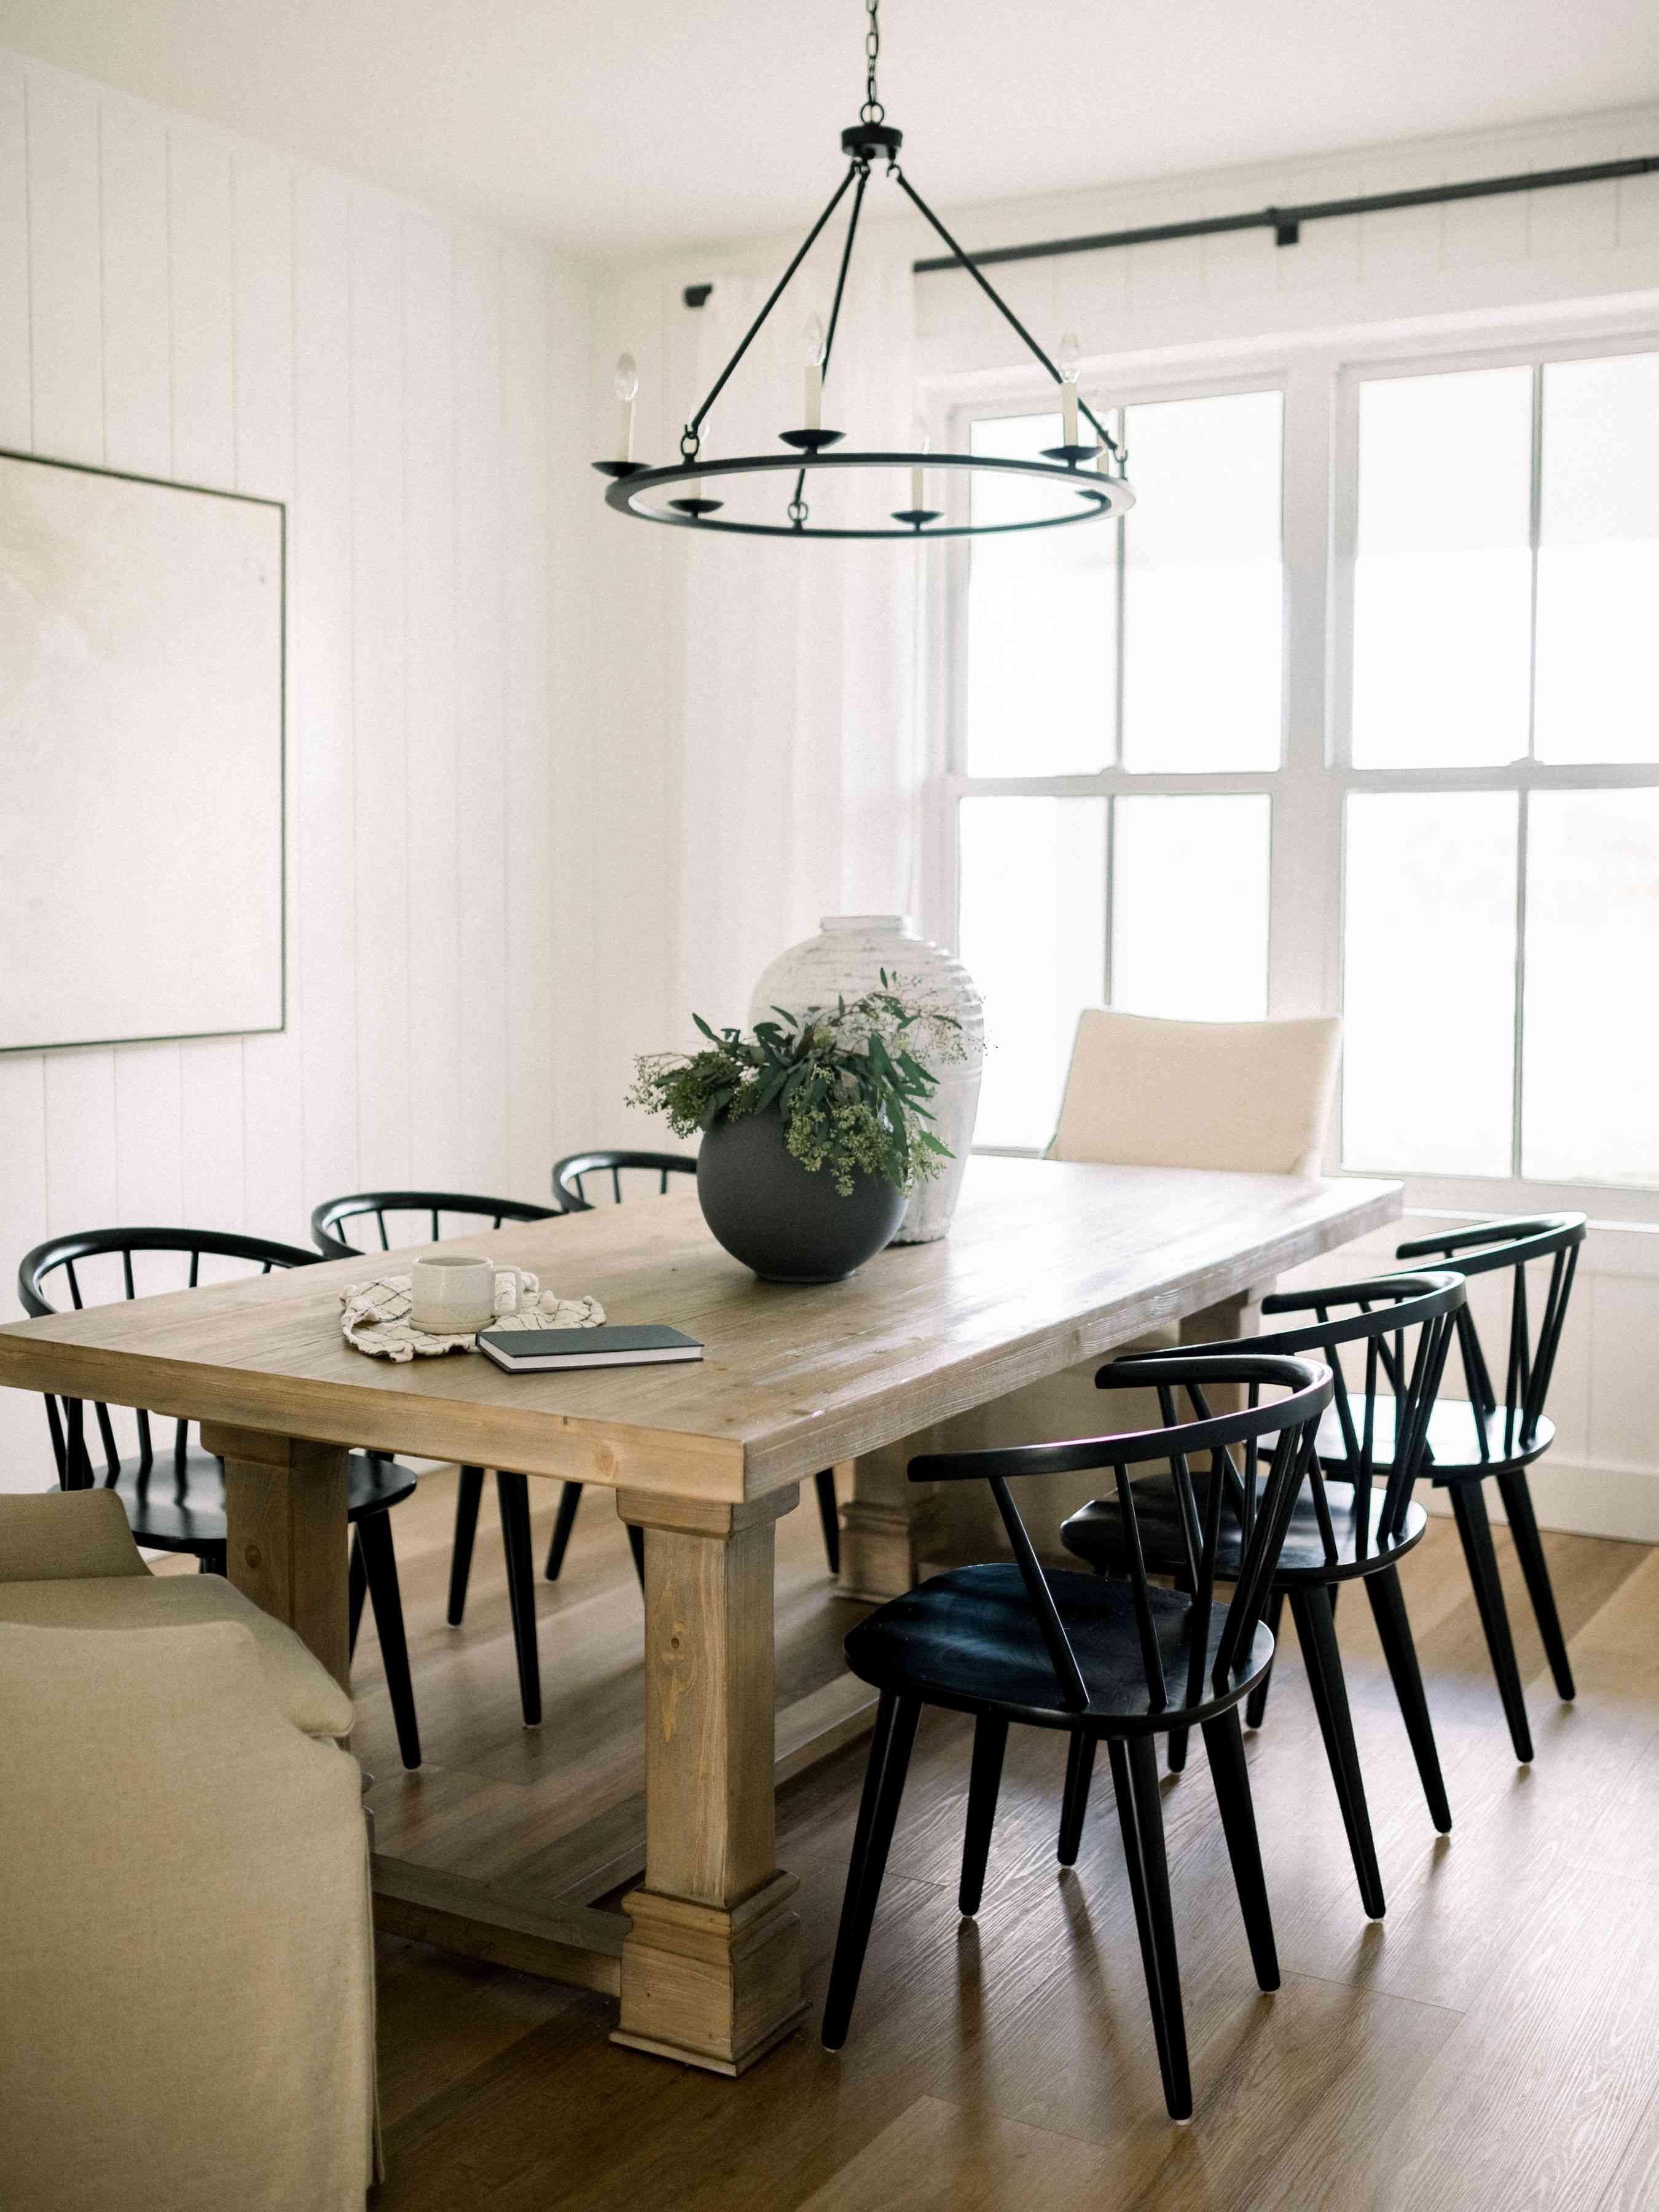 molly kidd home tour dining room